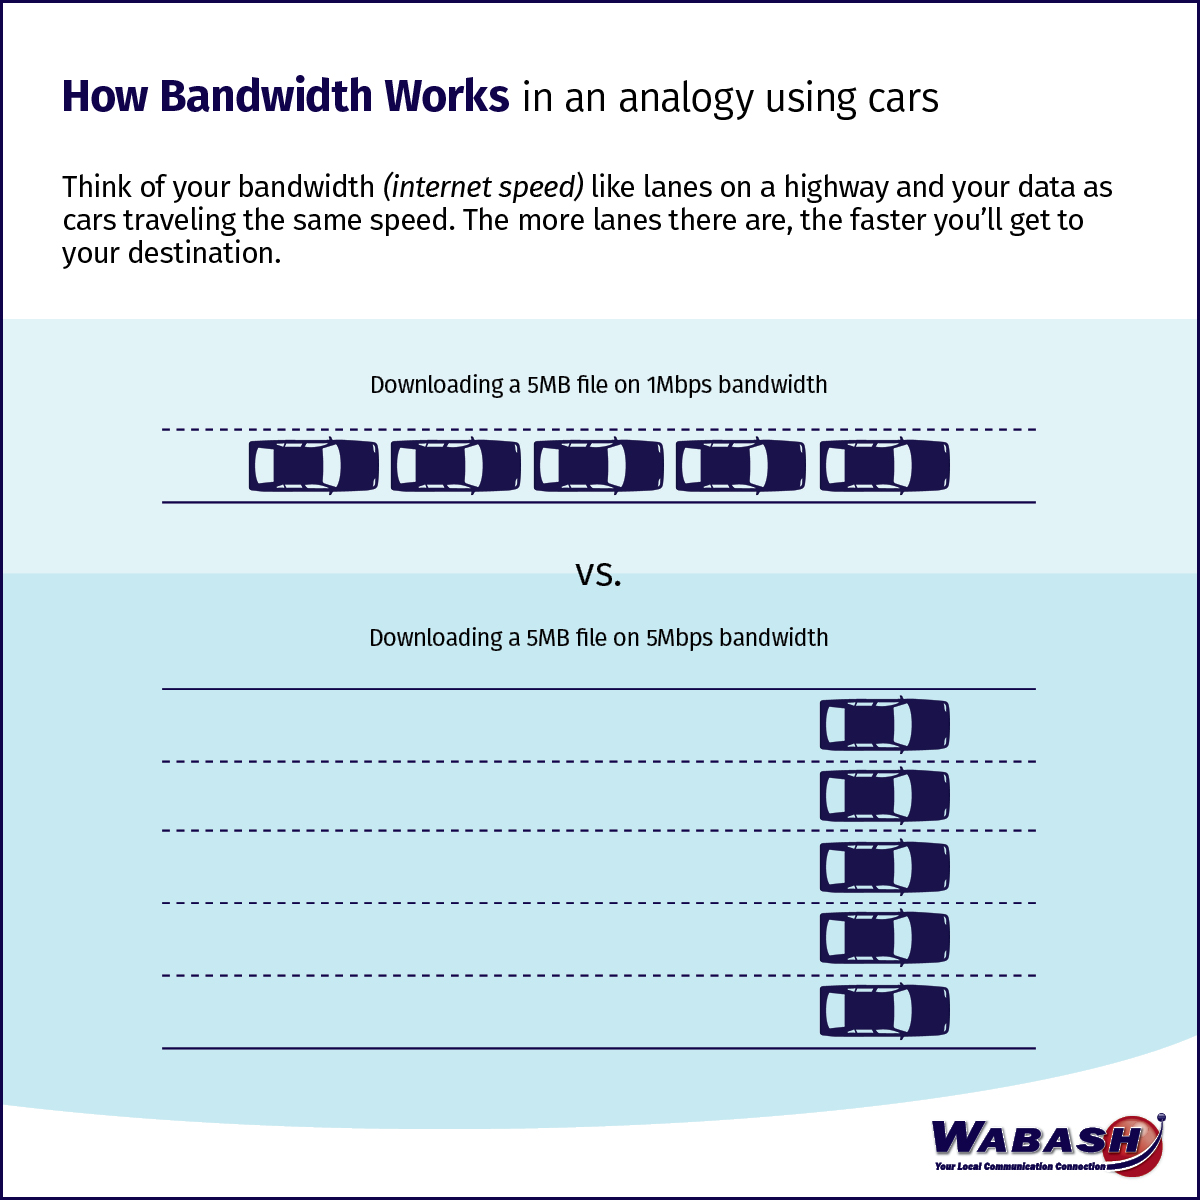 How Bandwidth Works in an Analogy Using Cars